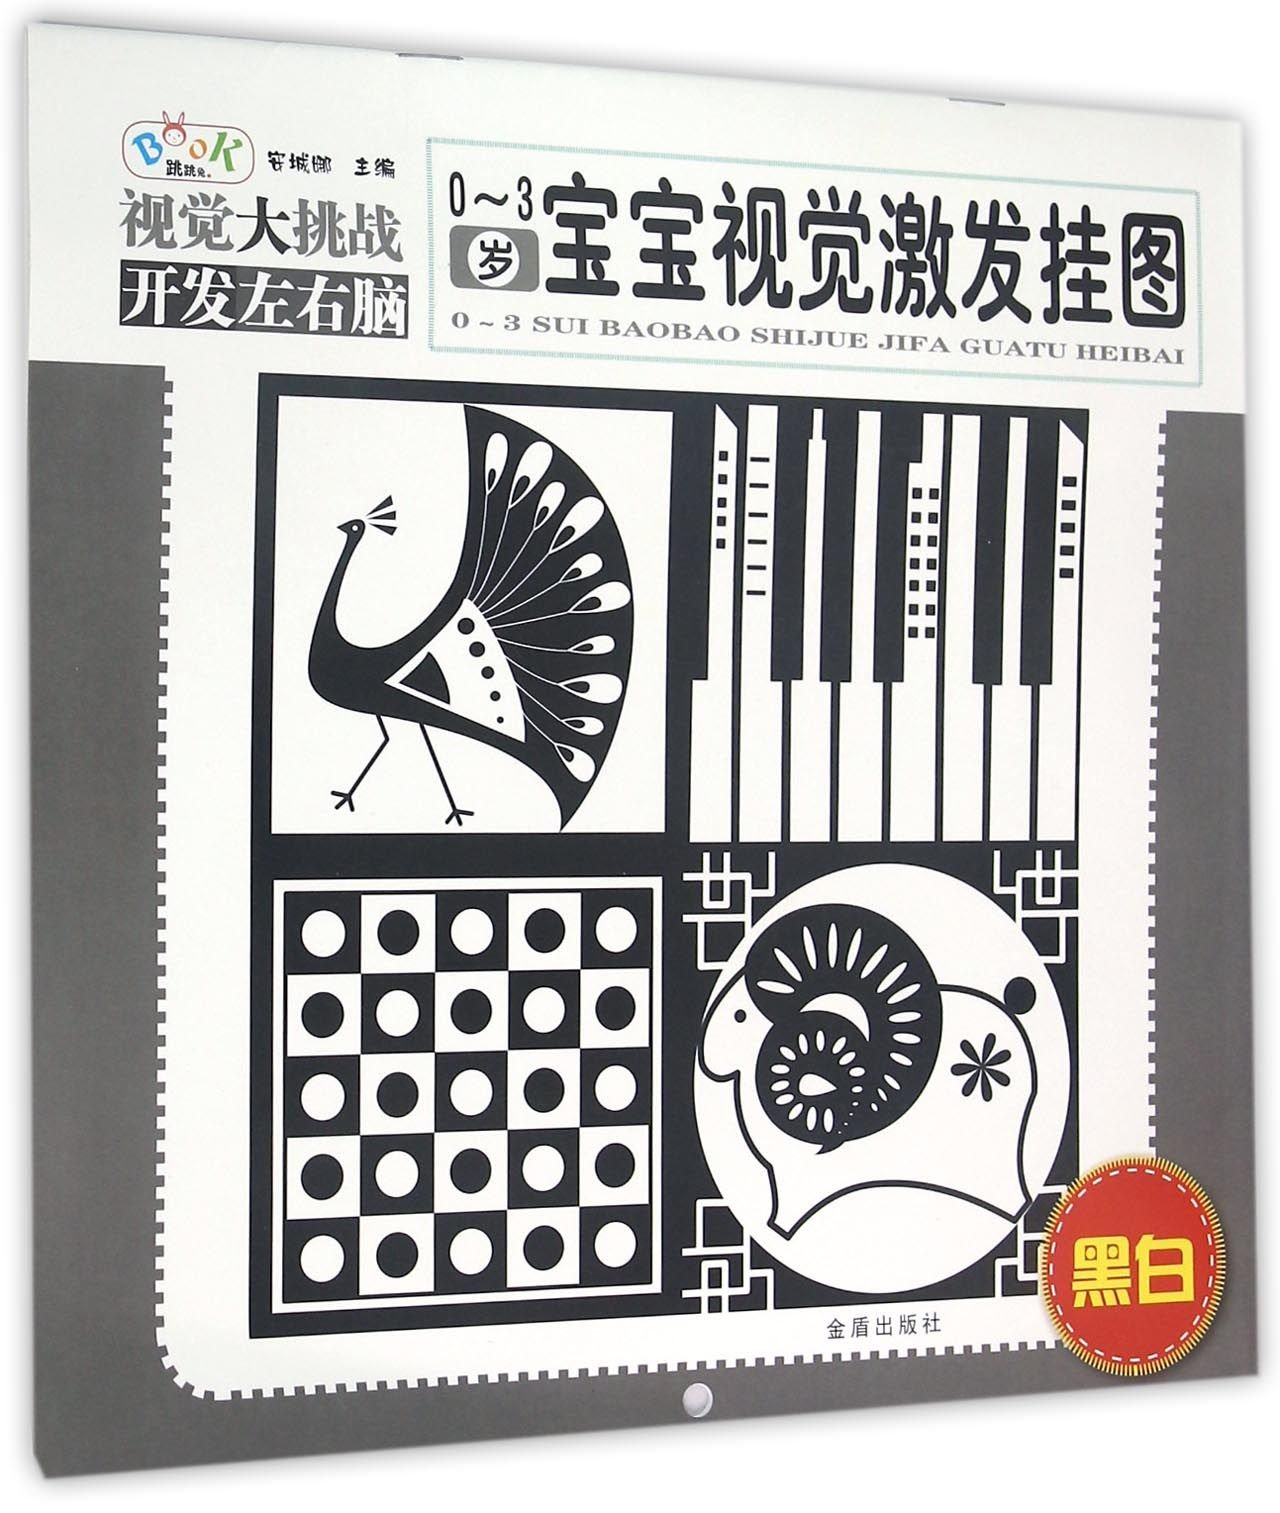 Download Visual Stimulation Picture for Babies below 3 Years Old (Chinese Edition) Text fb2 book